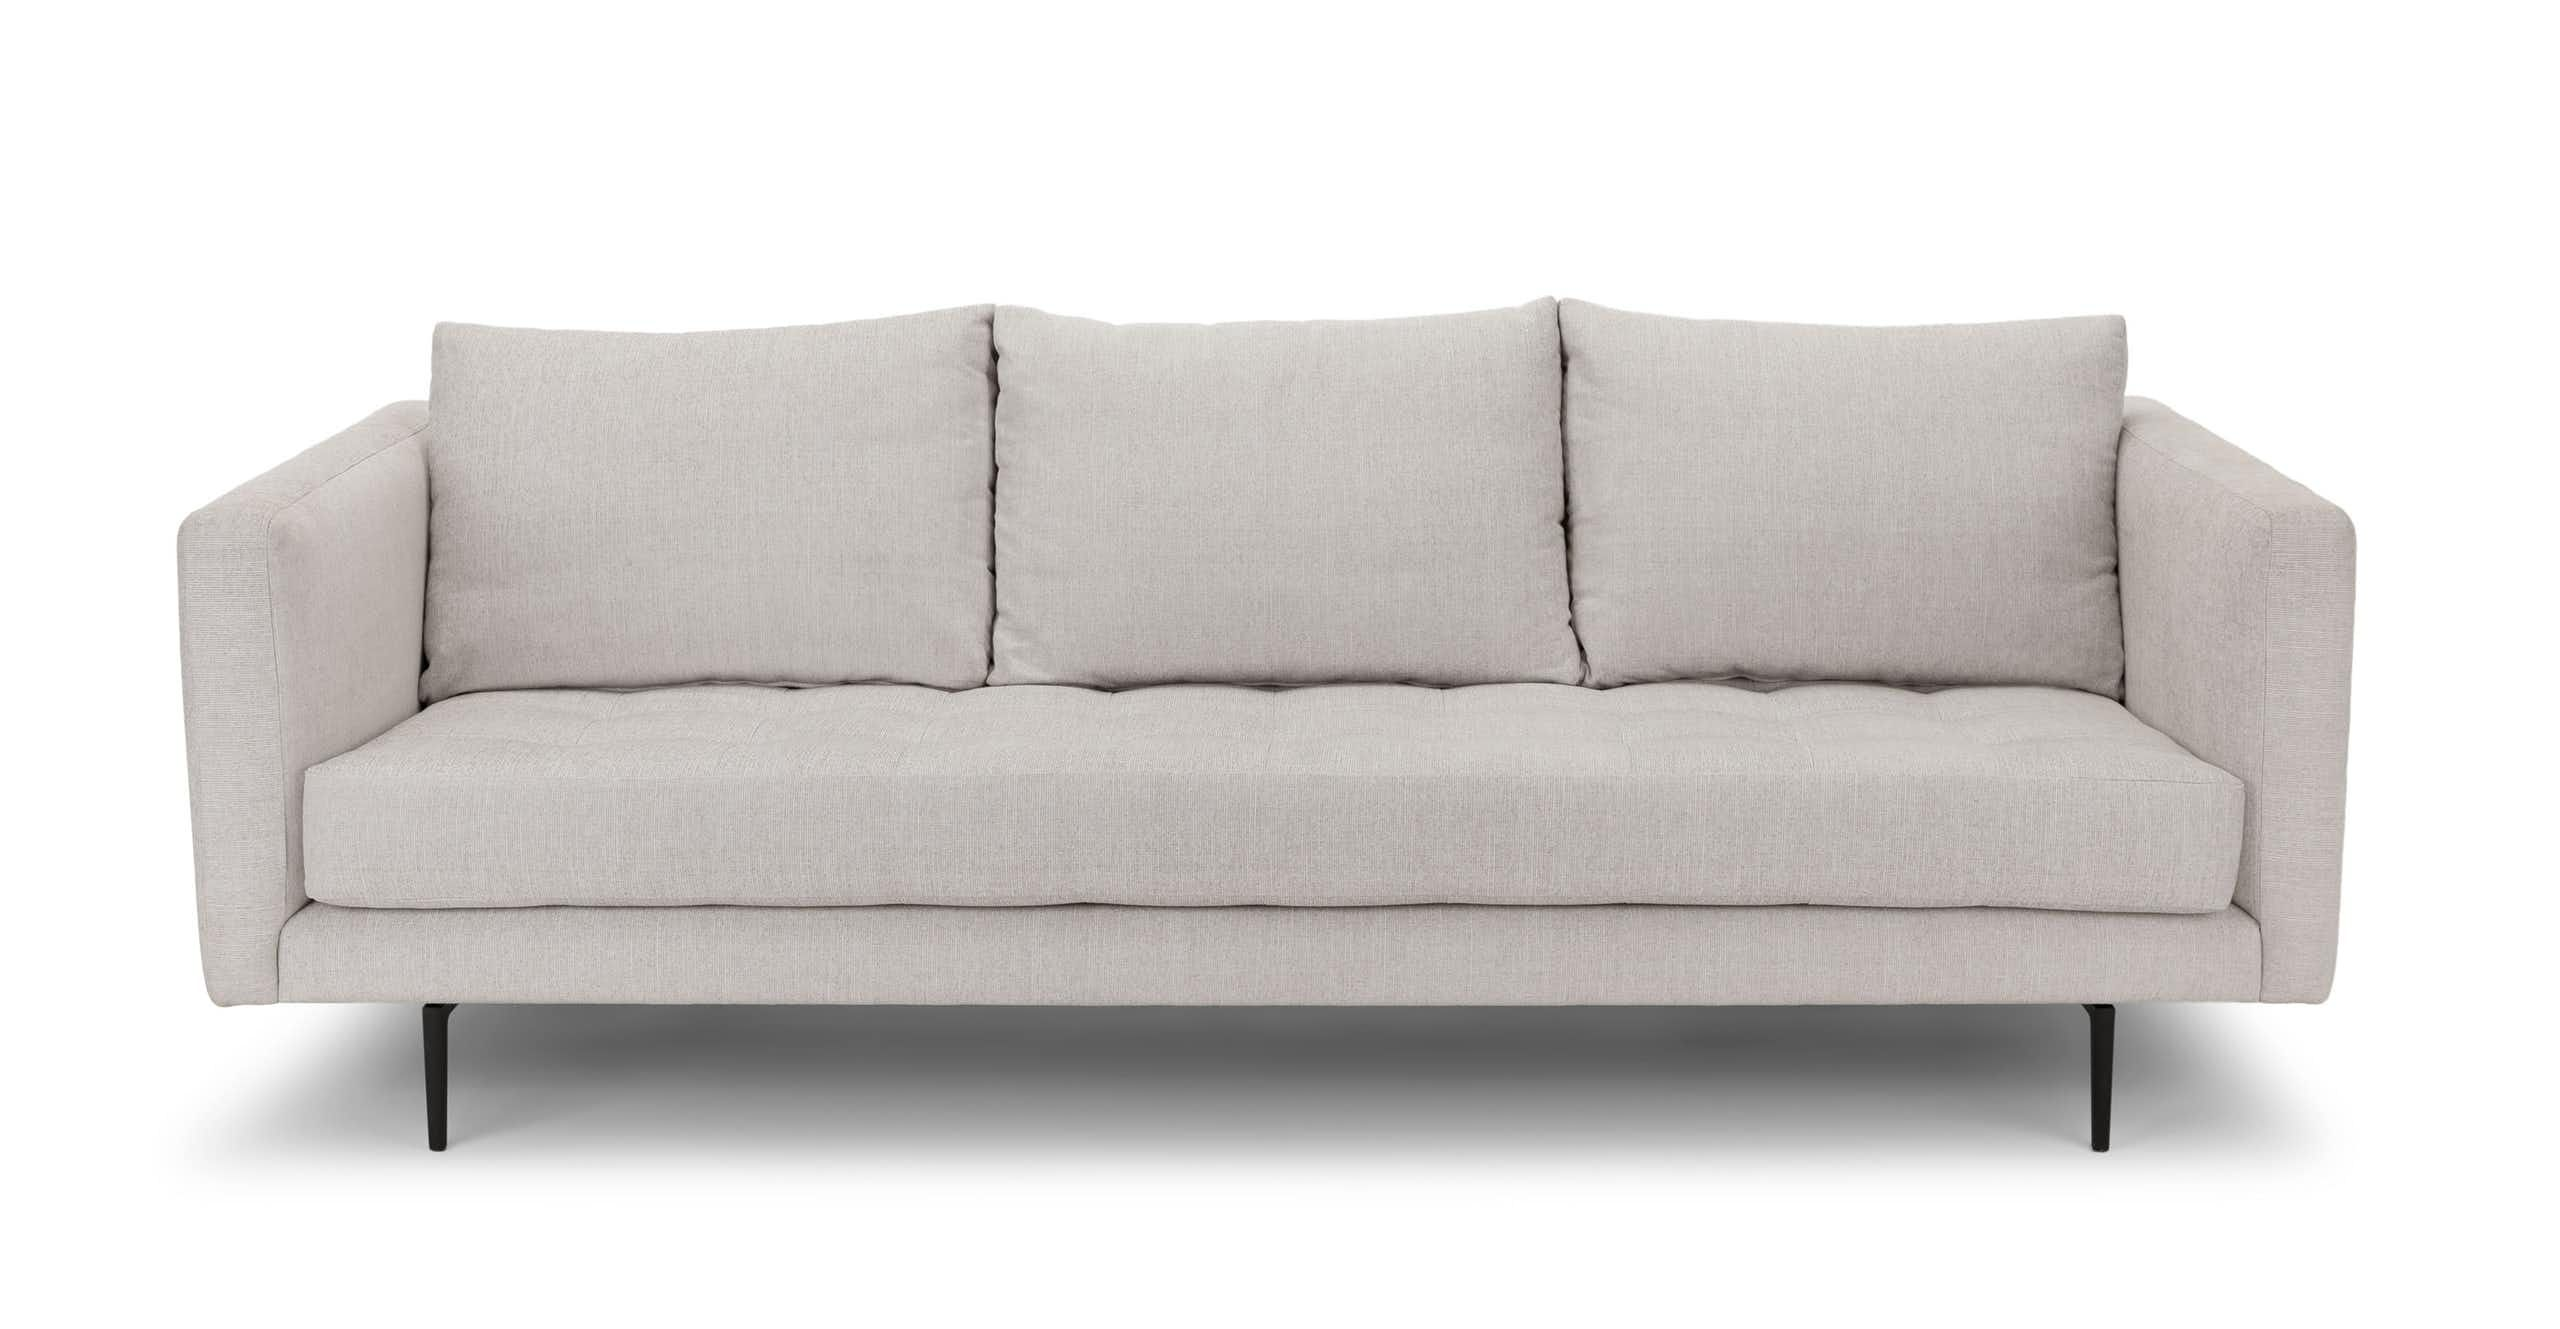 Terrific White Tufted Sofa 3 Seater Upholstered Article Parker Pdpeps Interior Chair Design Pdpepsorg